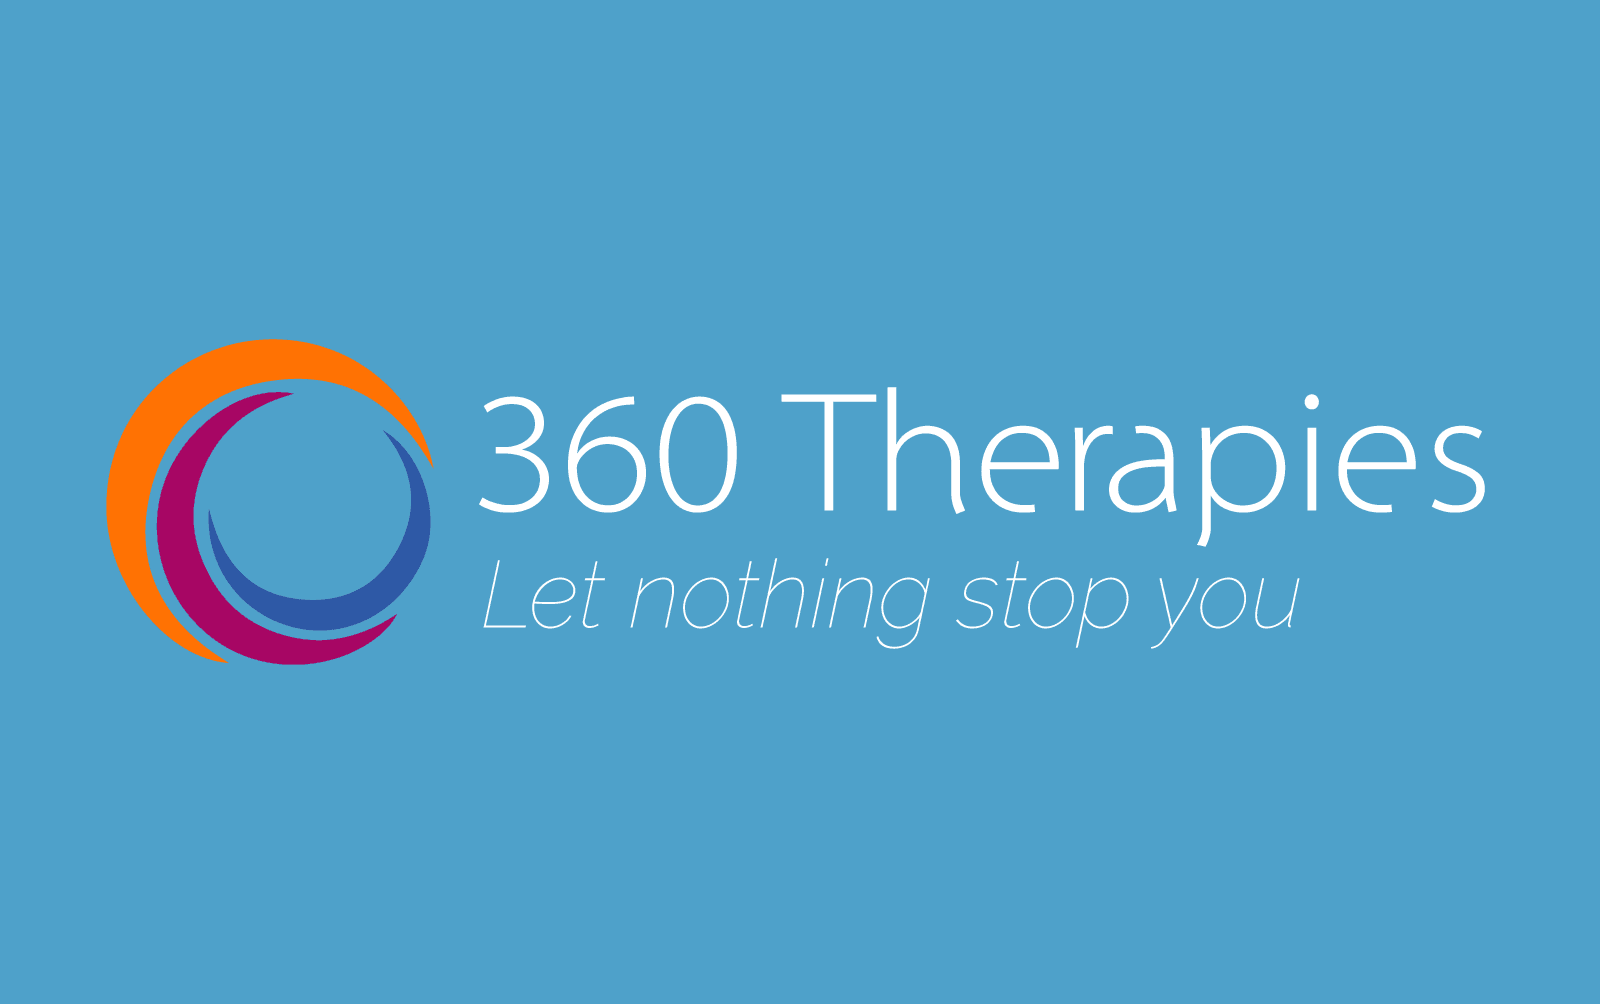 360 Therapies